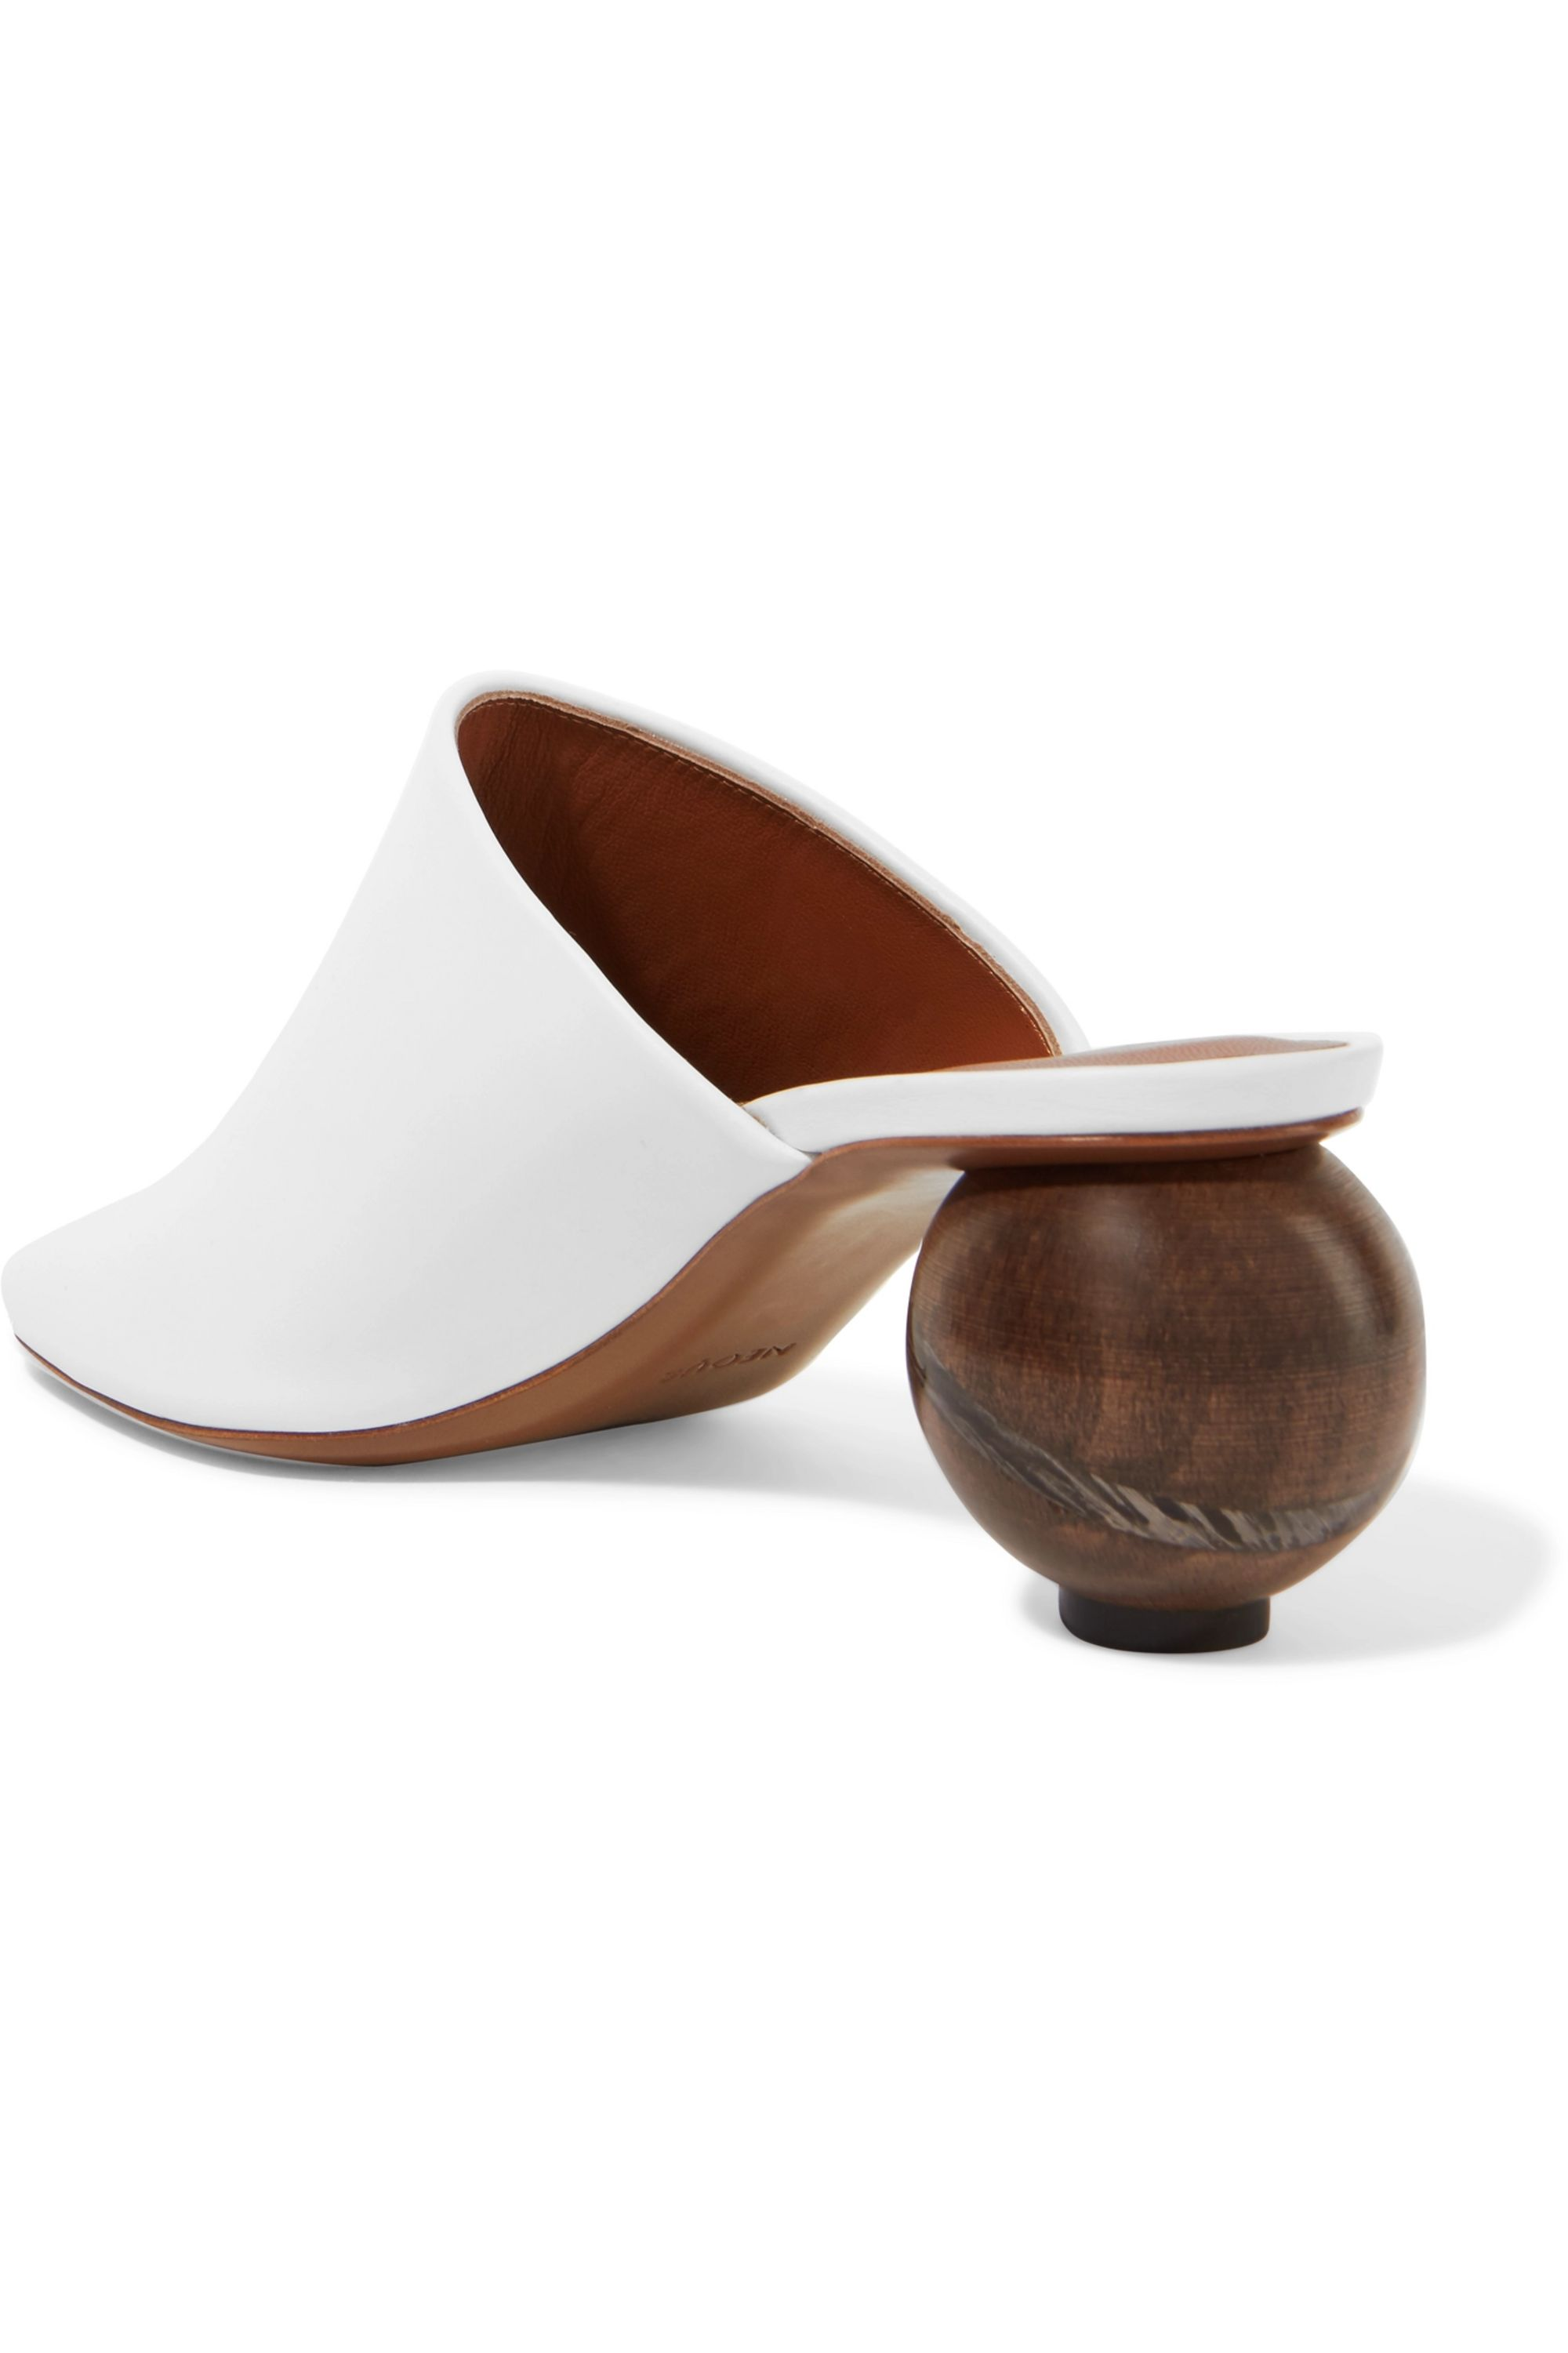 Neous Calanthe leather mules